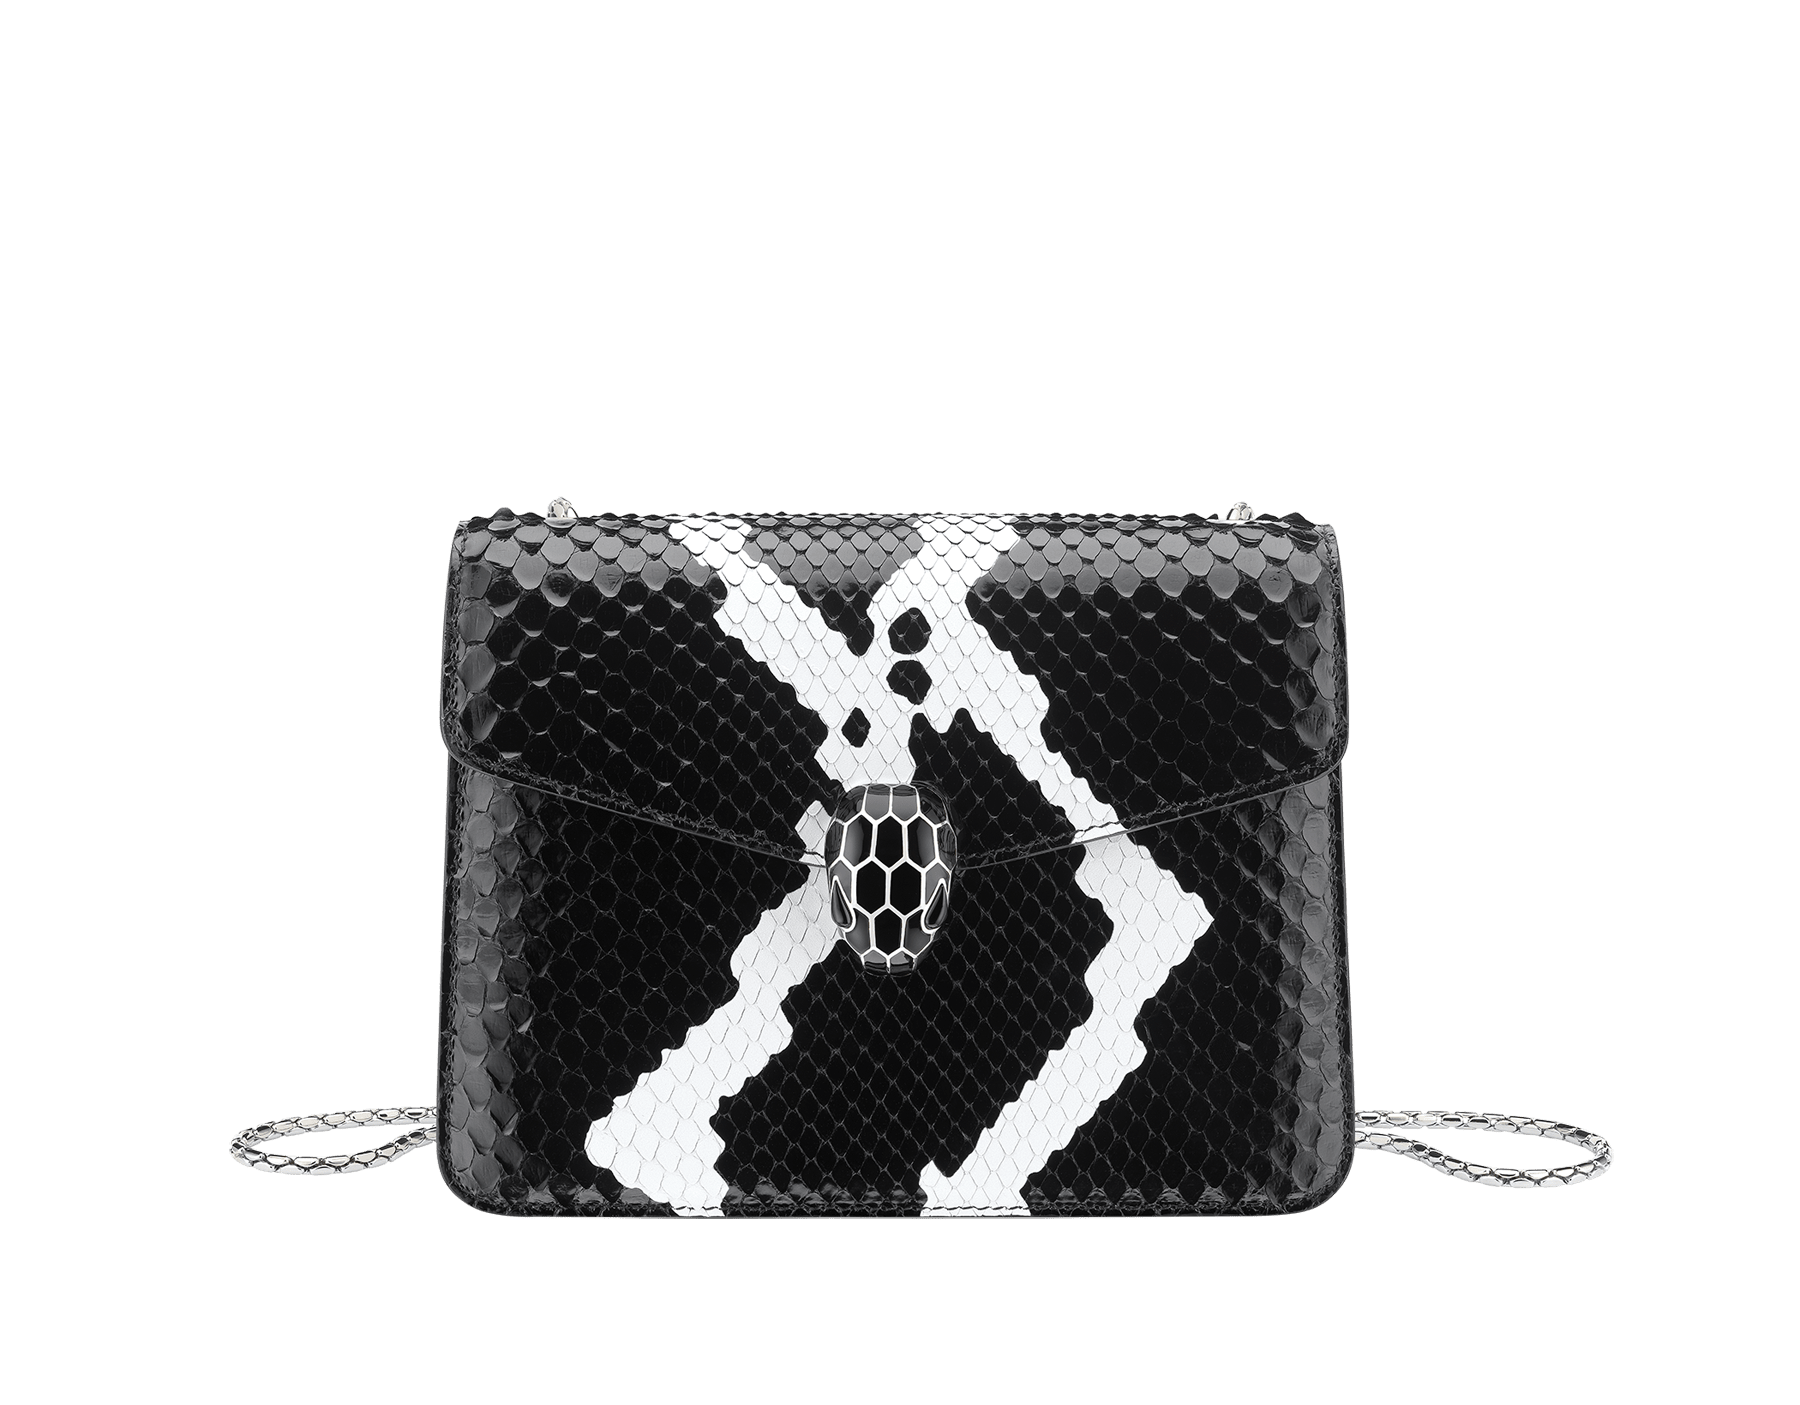 """Serpenti Forever"" crossbody bag in roccia ""Mineral"" python skin. Iconic snakehead closure in light gold plated brass enriched with black and hawk's eye enamel, and black onyx eyes. 422-Pb image 1"